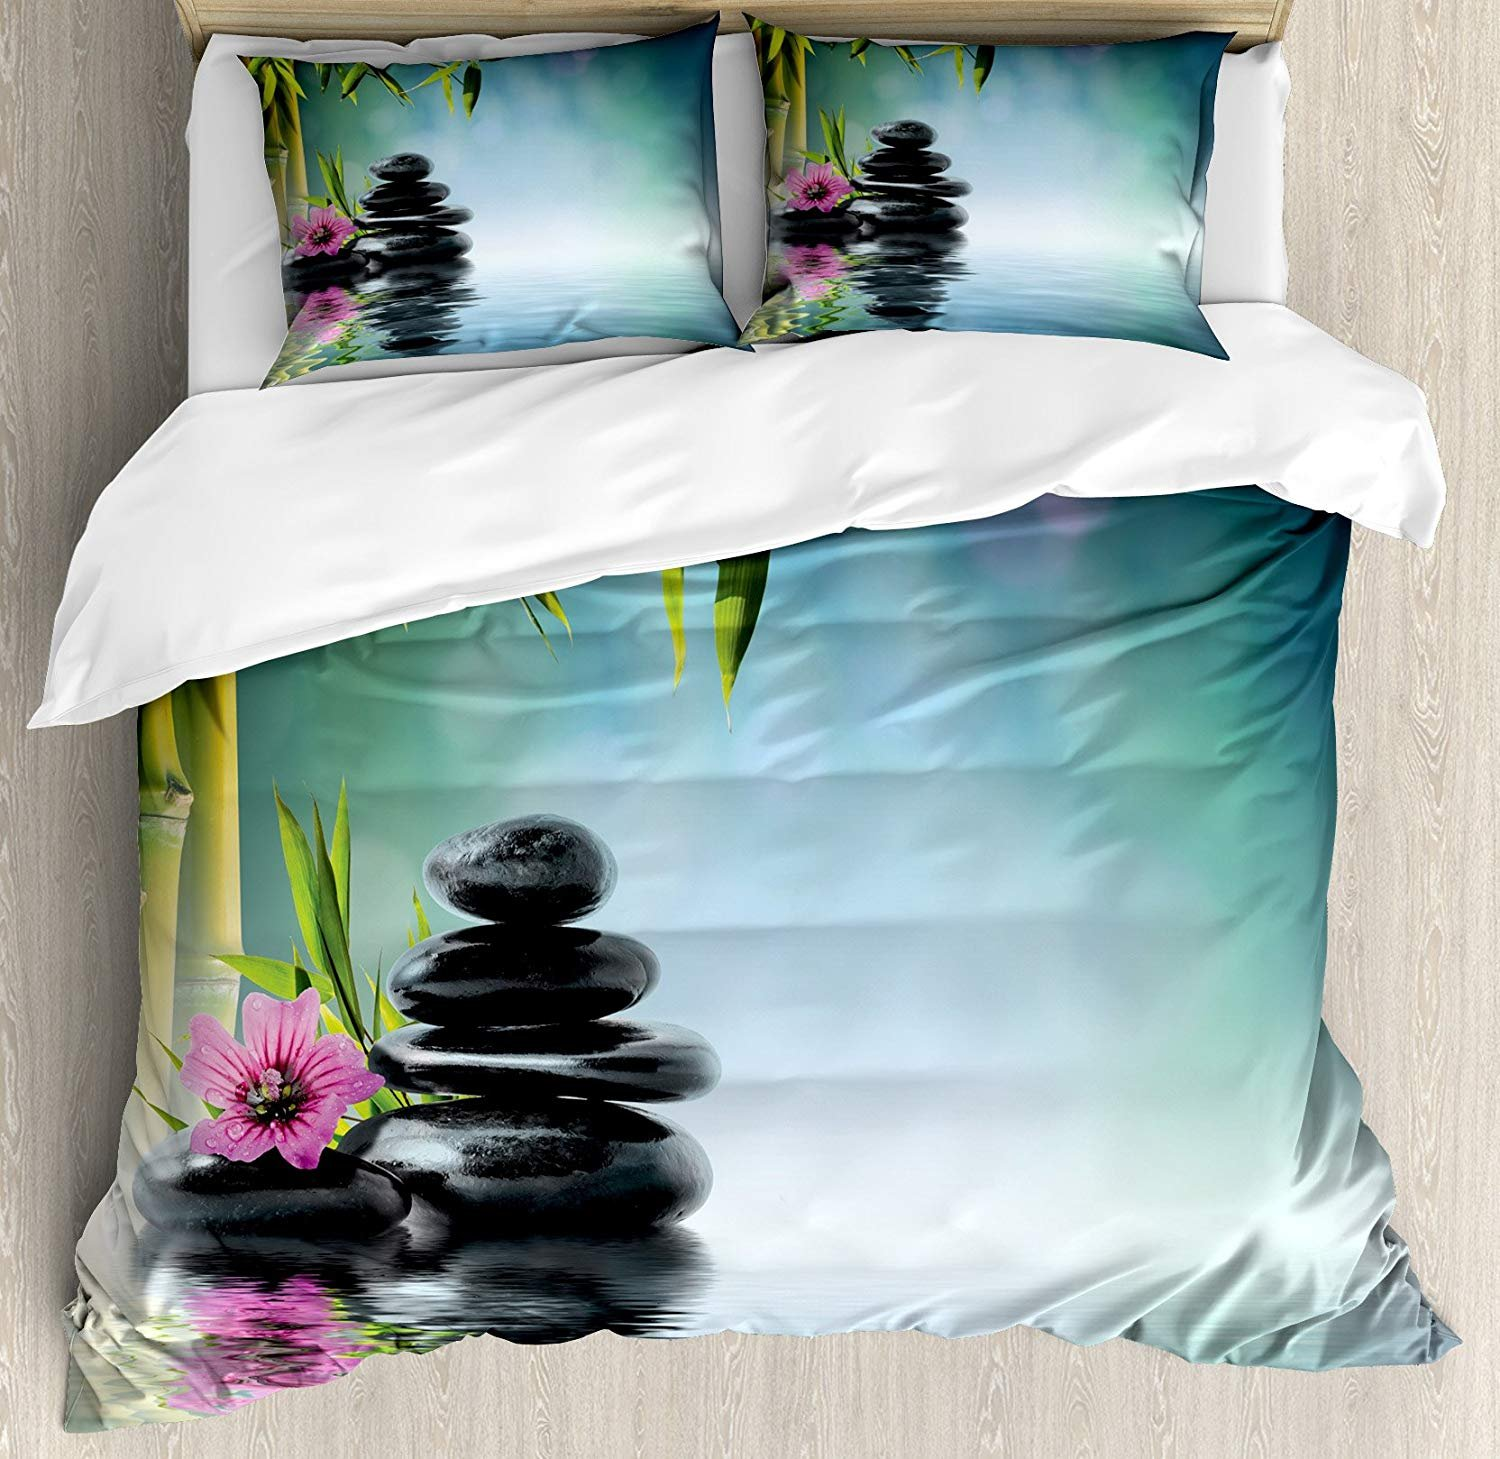 Zen Garden Duvet Cover Set Twin, Lightweight 4 Pieces Bedding Set with Zipper Ties Includes 2 Pillow Shams -Pink Flower Spa Stones and Bamboo Tree on The Water Relaxation Theraphy Peace